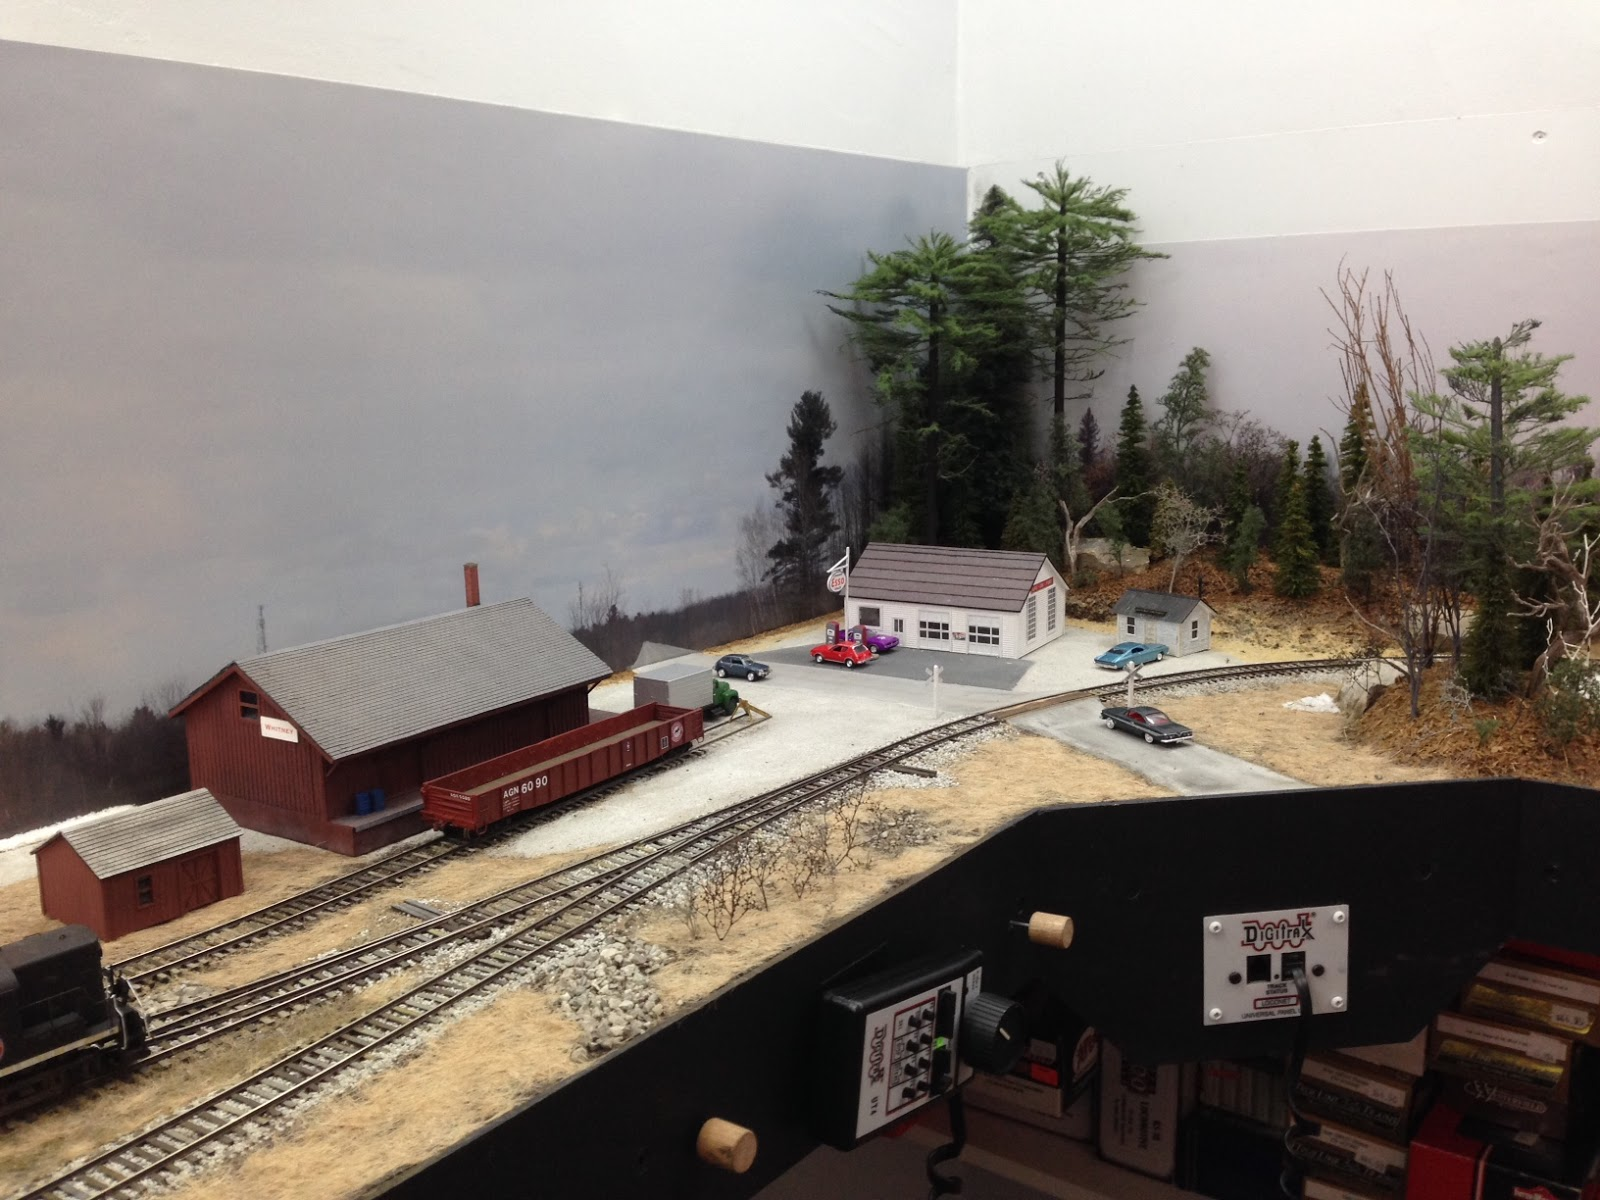 Algonquin railway track plan and layout tour - Ho train layouts for small spaces image ...